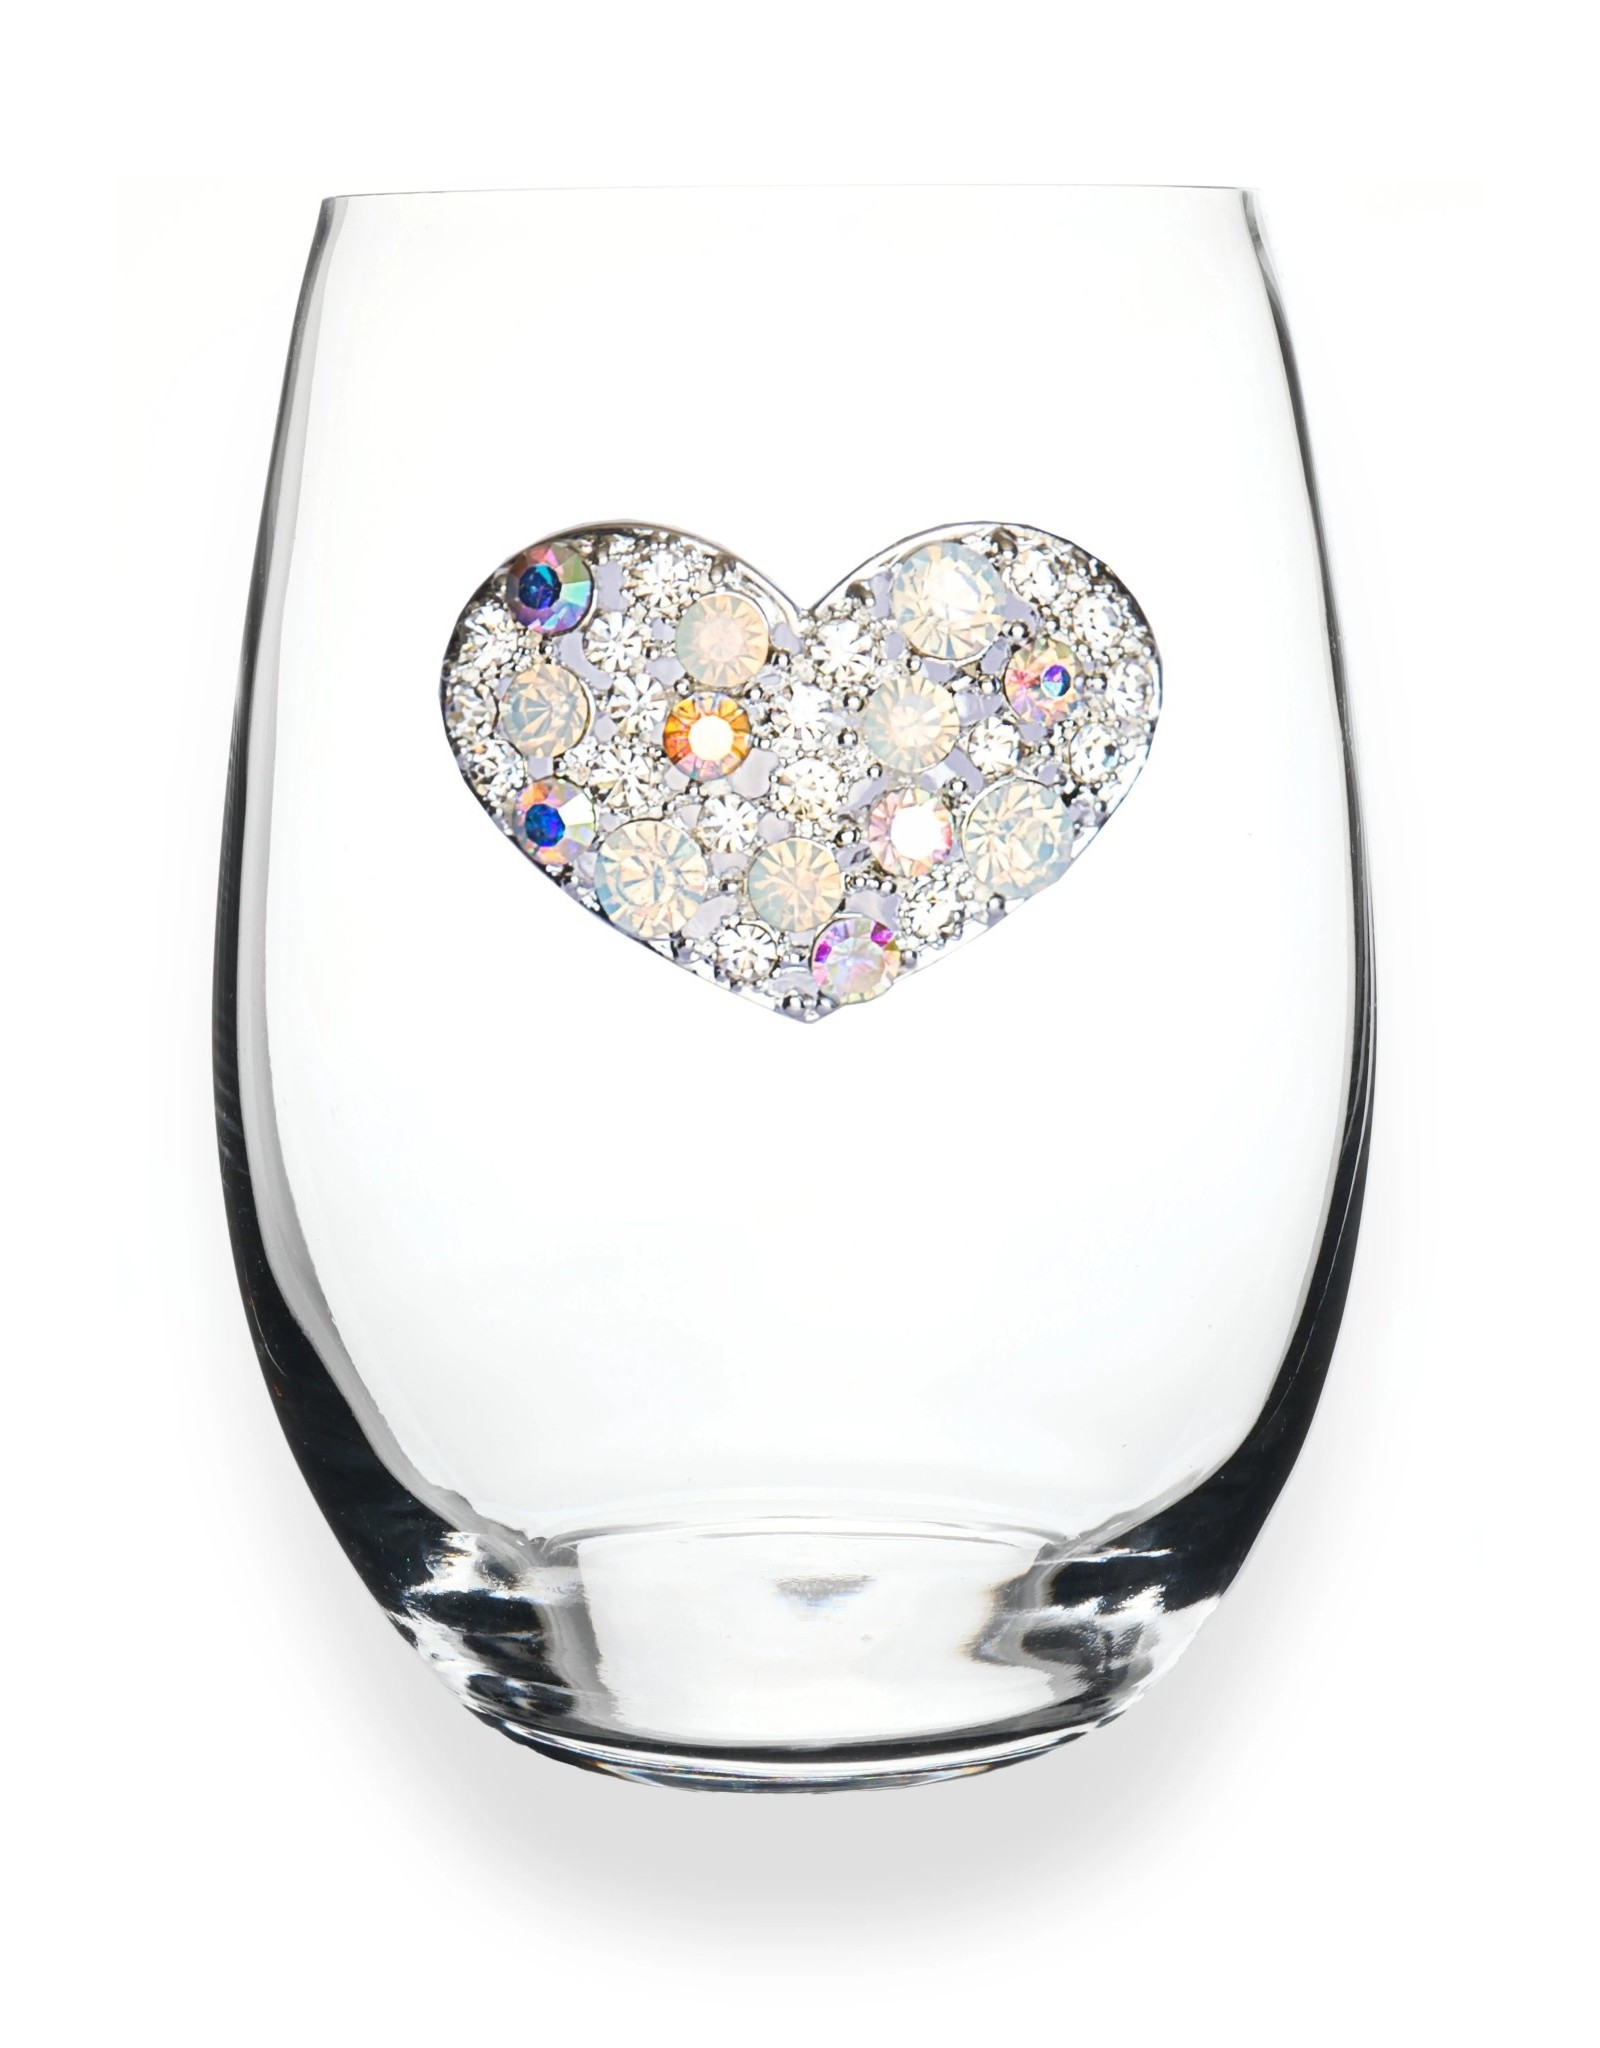 The Queen's Jewels Multi Stone Heart Jeweled Stemless Wine Glass